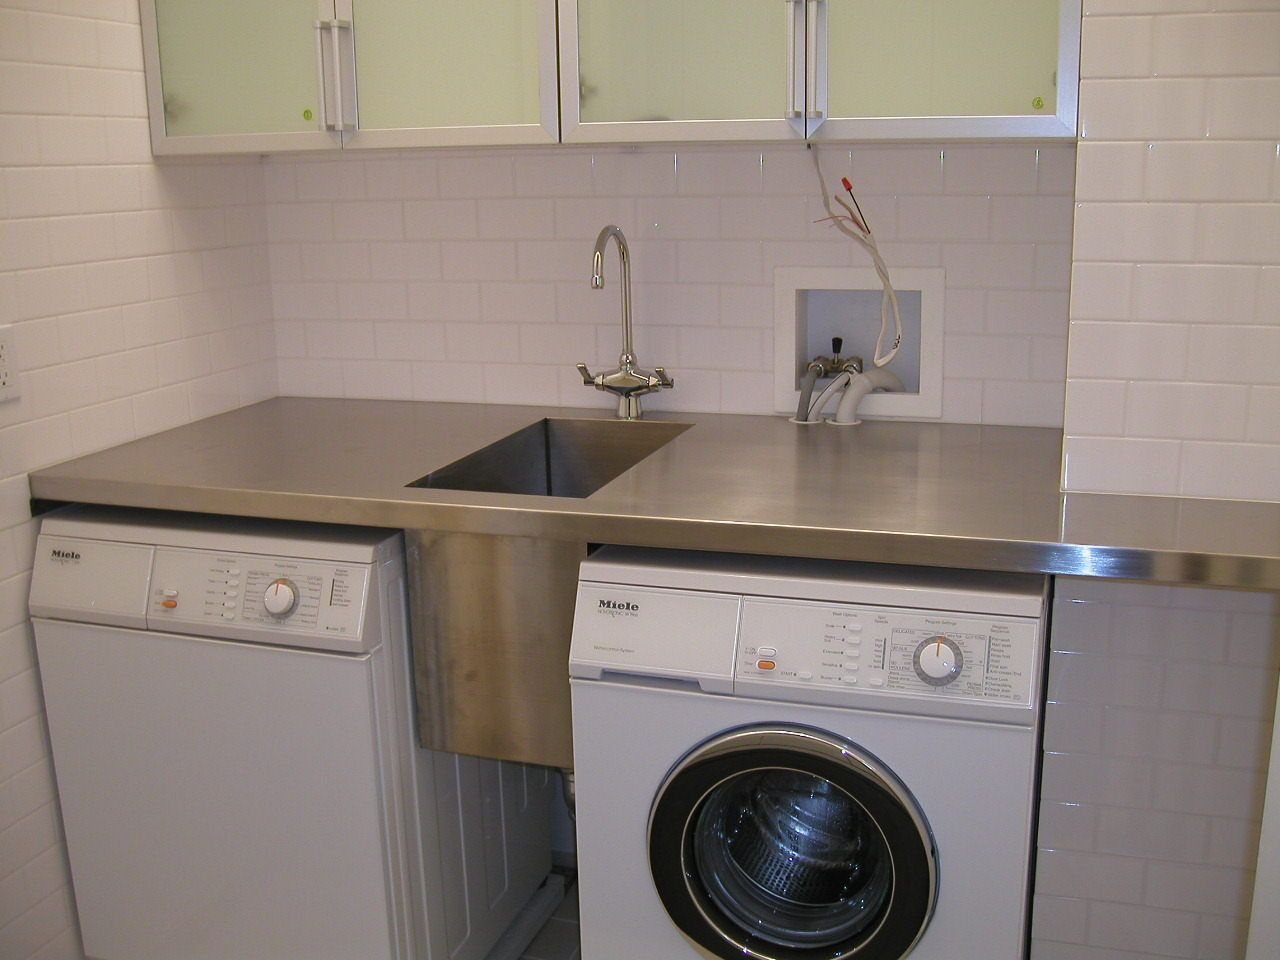 Kitchen Utility Room Ideas Laundry Room Counter Top With Sink Mud Laundry Room